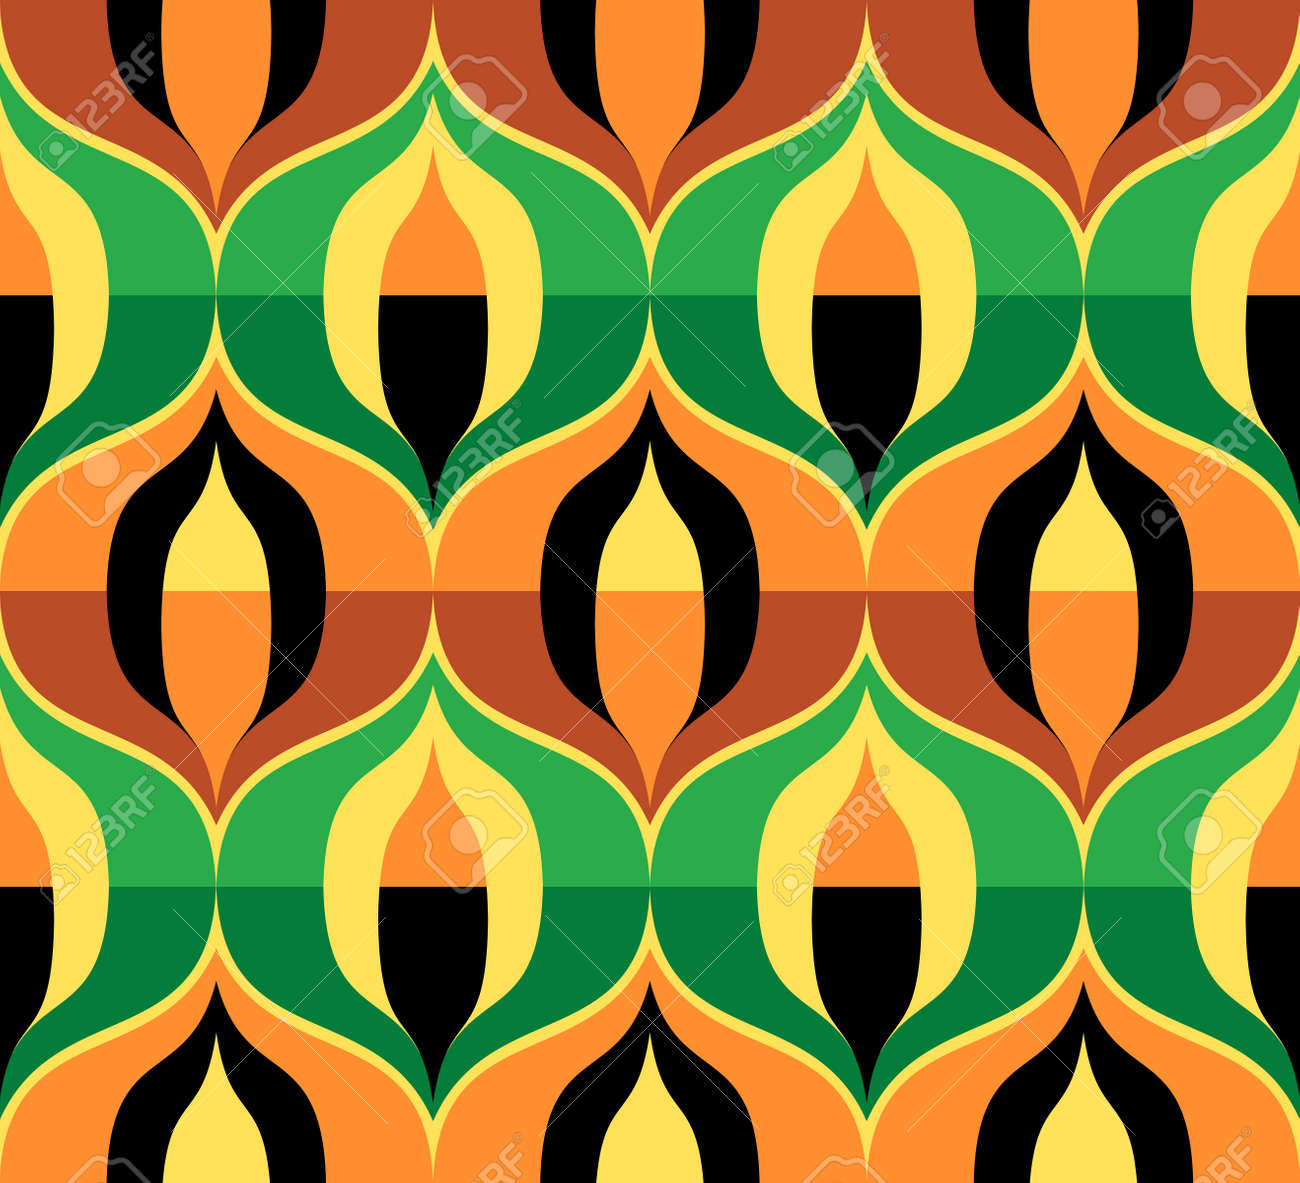 110829404 seamless retro pattern in the style of the sixties art deco vintage wallpaper or fabric